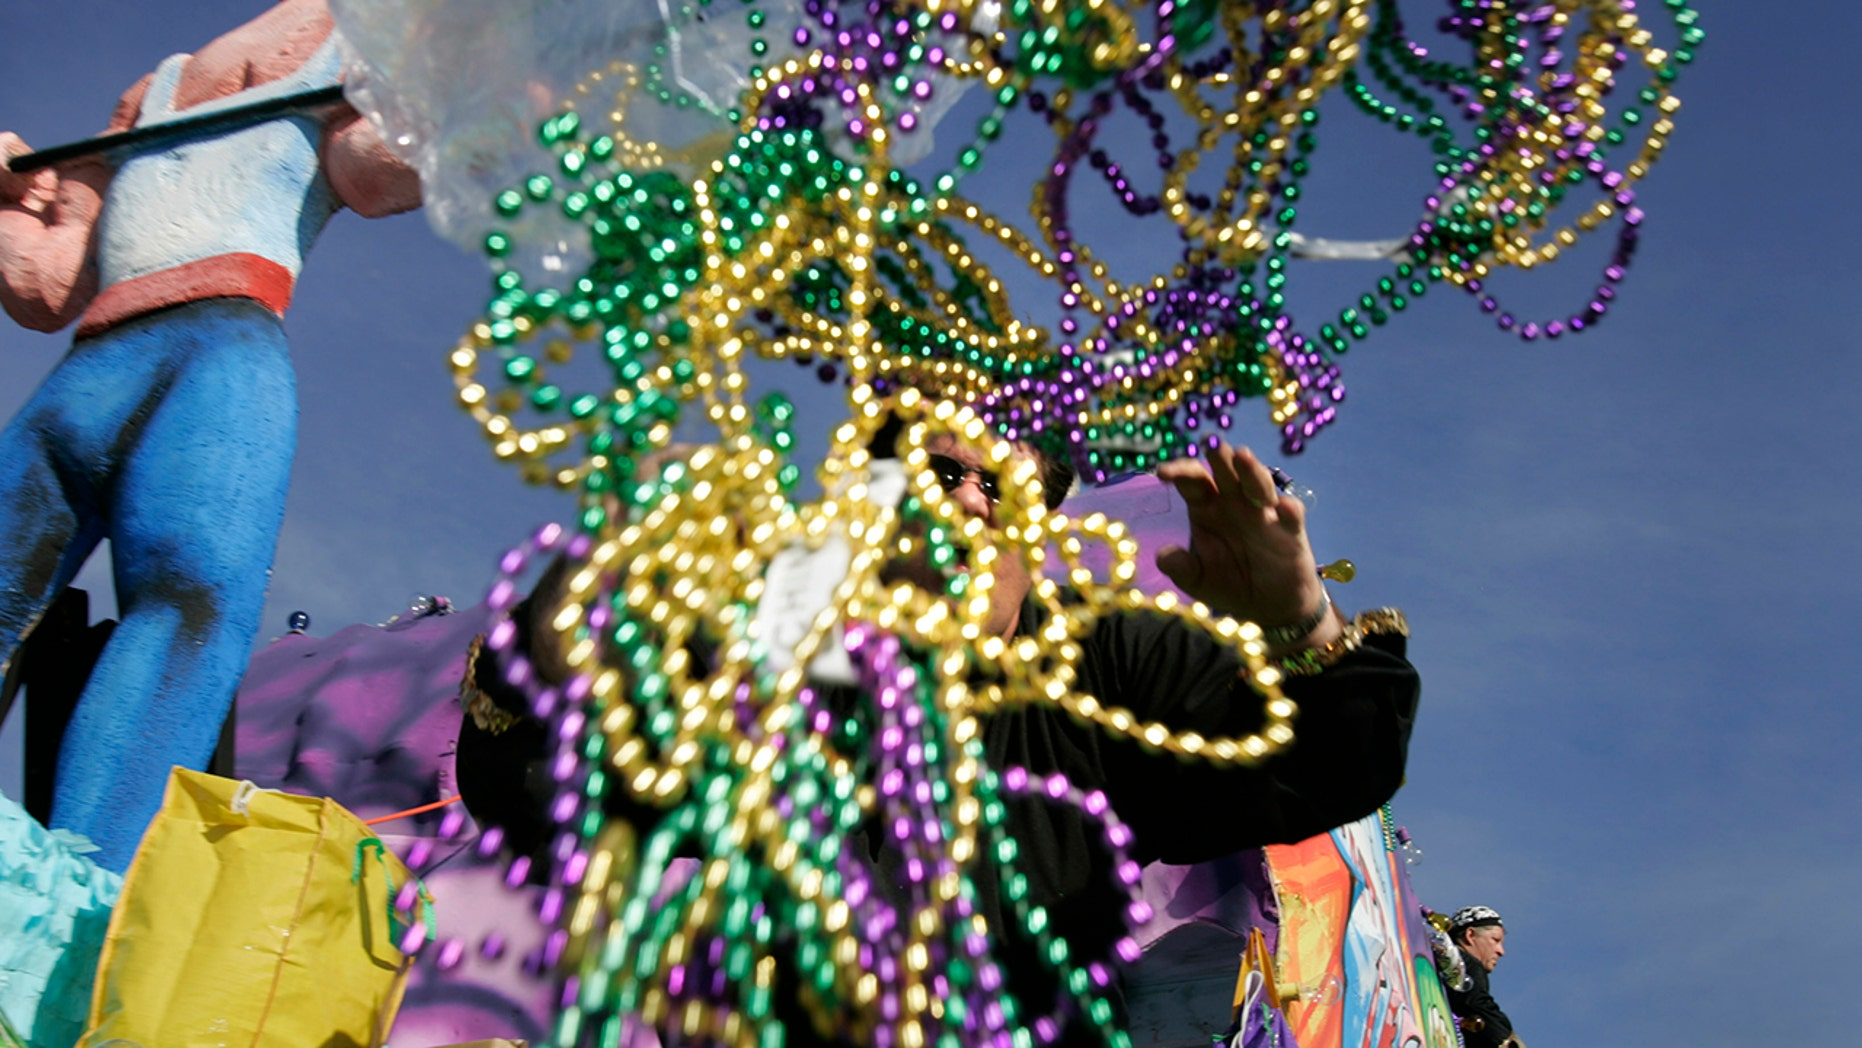 A Parade Rider Throws Out Handfuls Of Beads During A Mardi Gras Parade